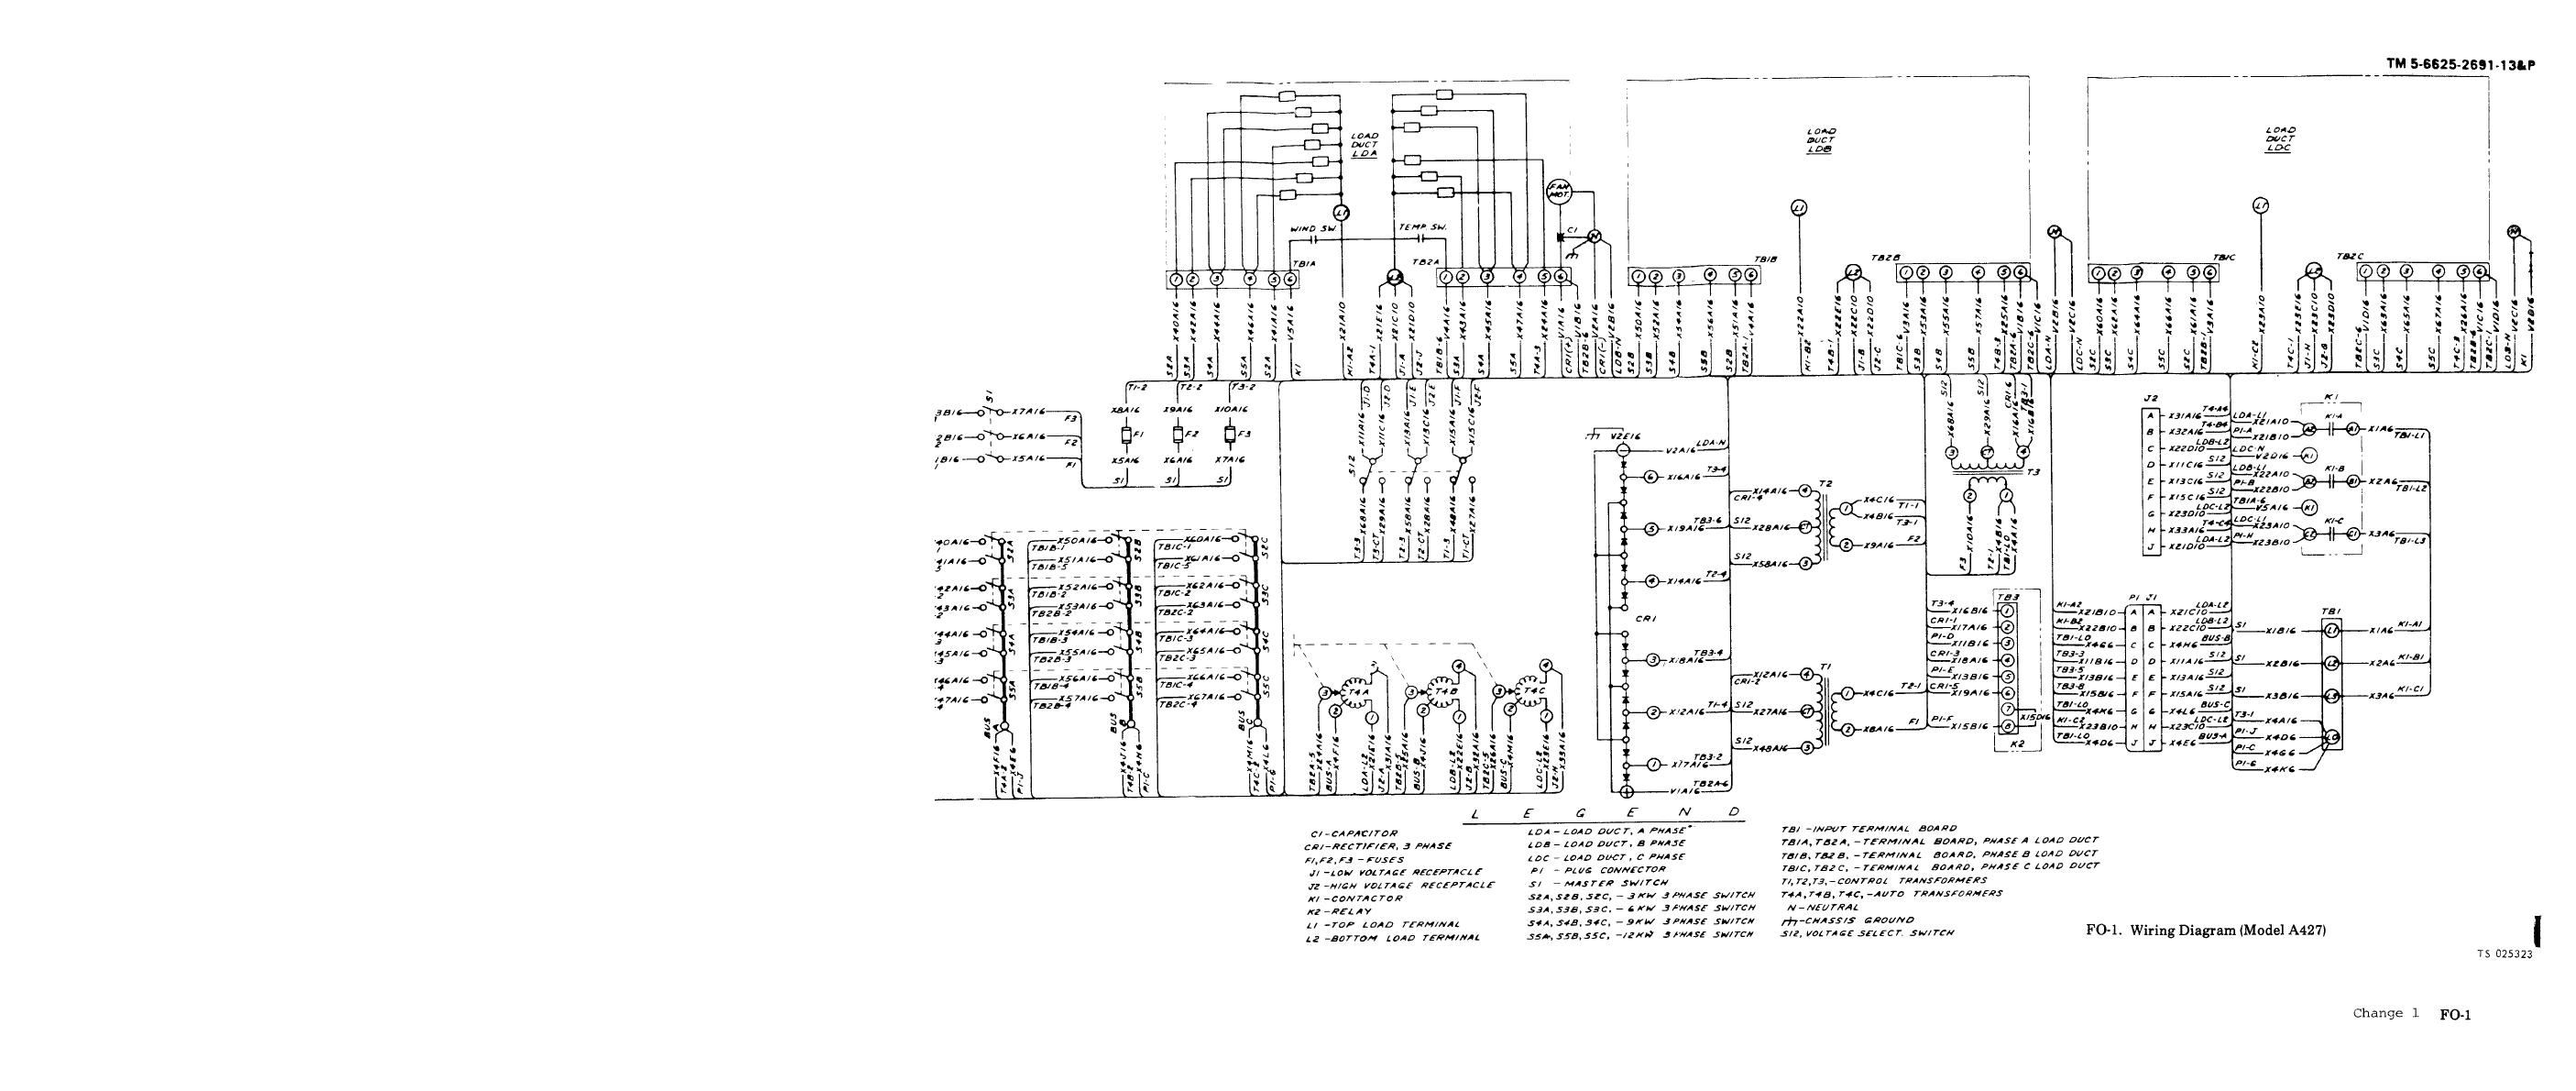 Fo 2 Wiring Diagram Model A427b